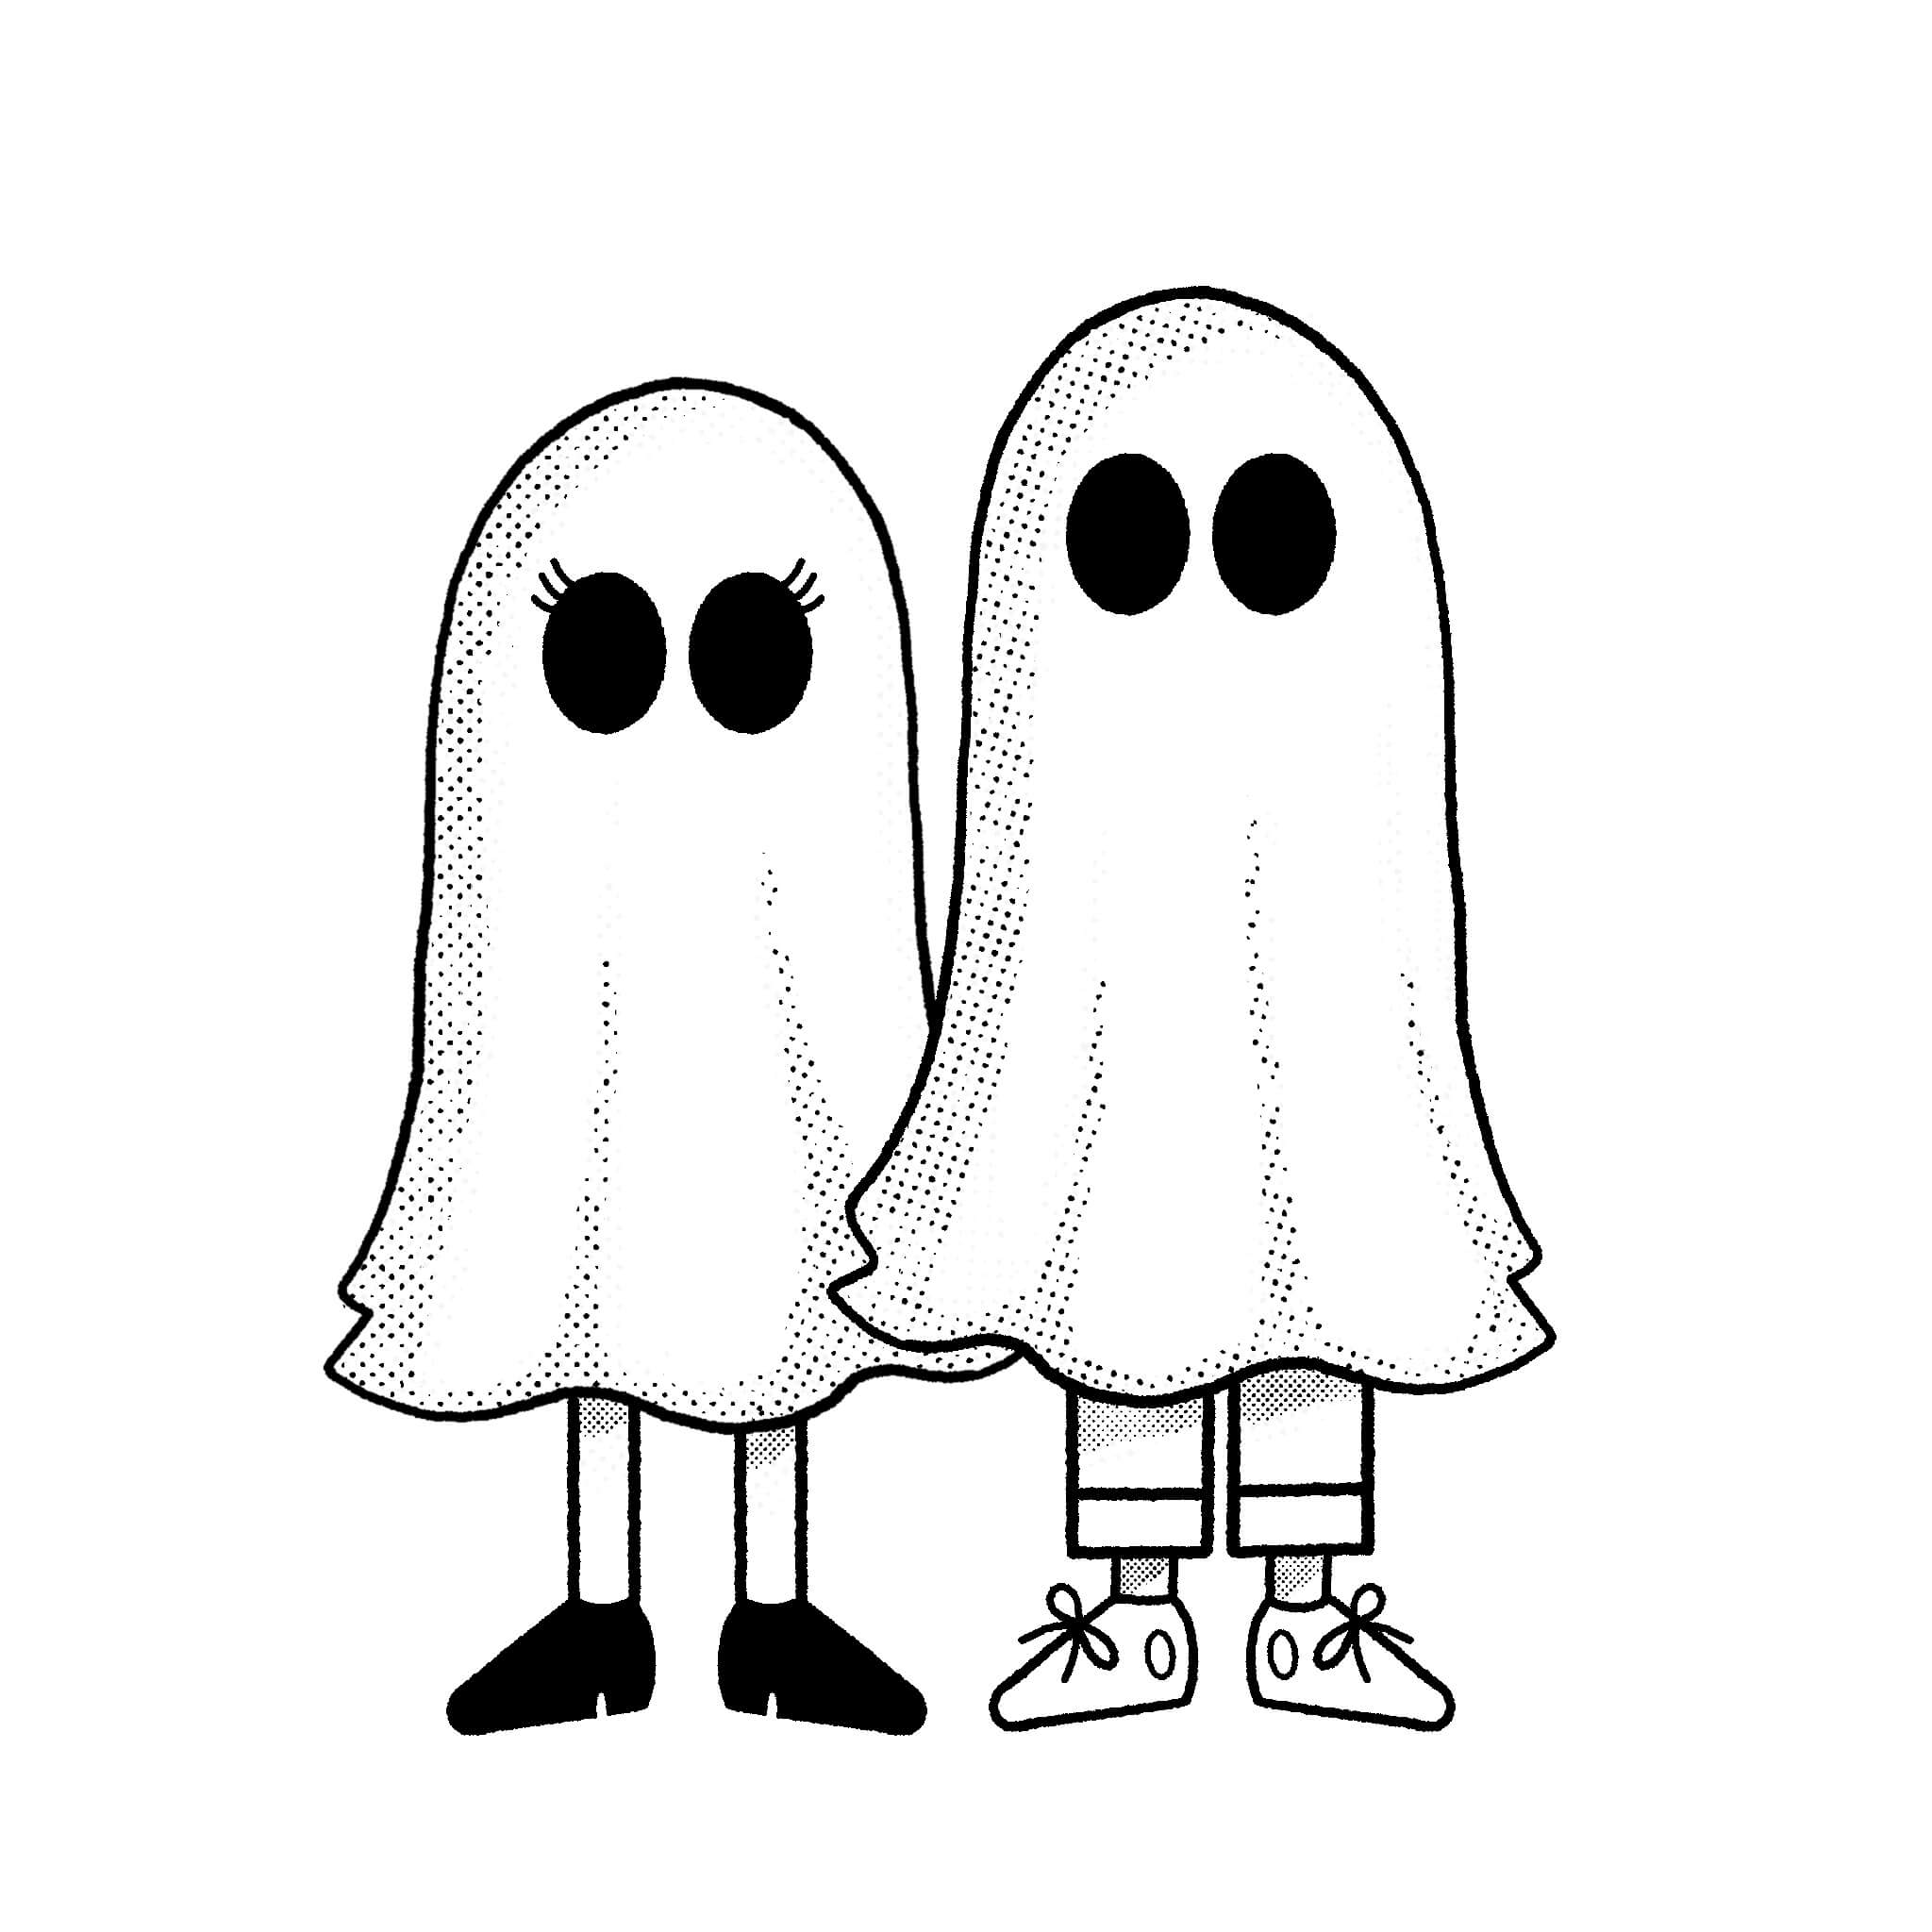 Illustration of Missy and Brandon as cartoon ghosts